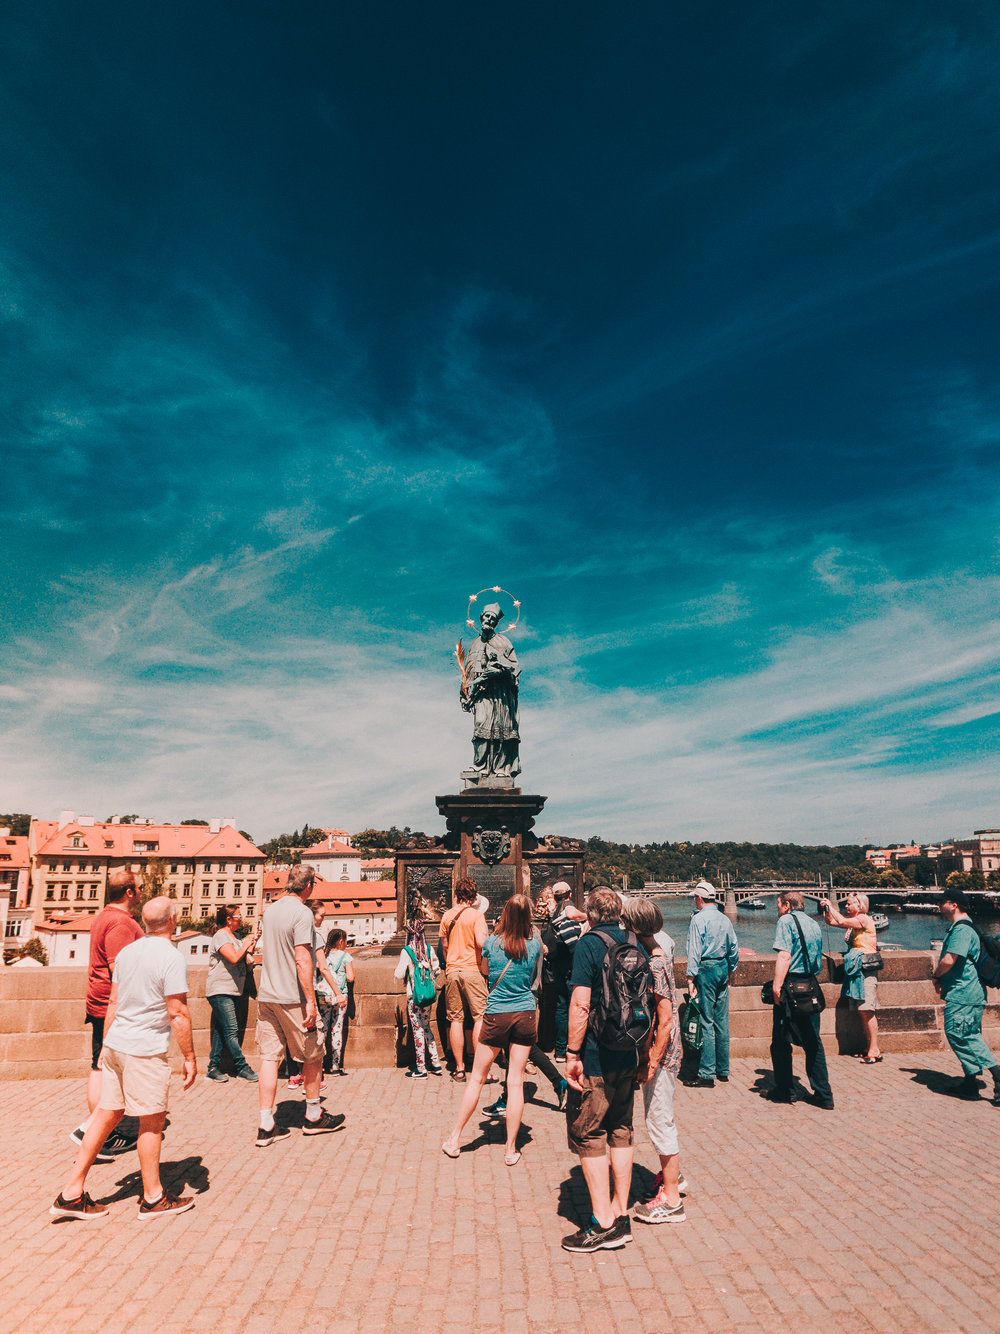 Discover Prague With bitplay 2017- iPhone 7 Plus - bitplay Wide Angle - Yes! Please Enjoy-13.jpg